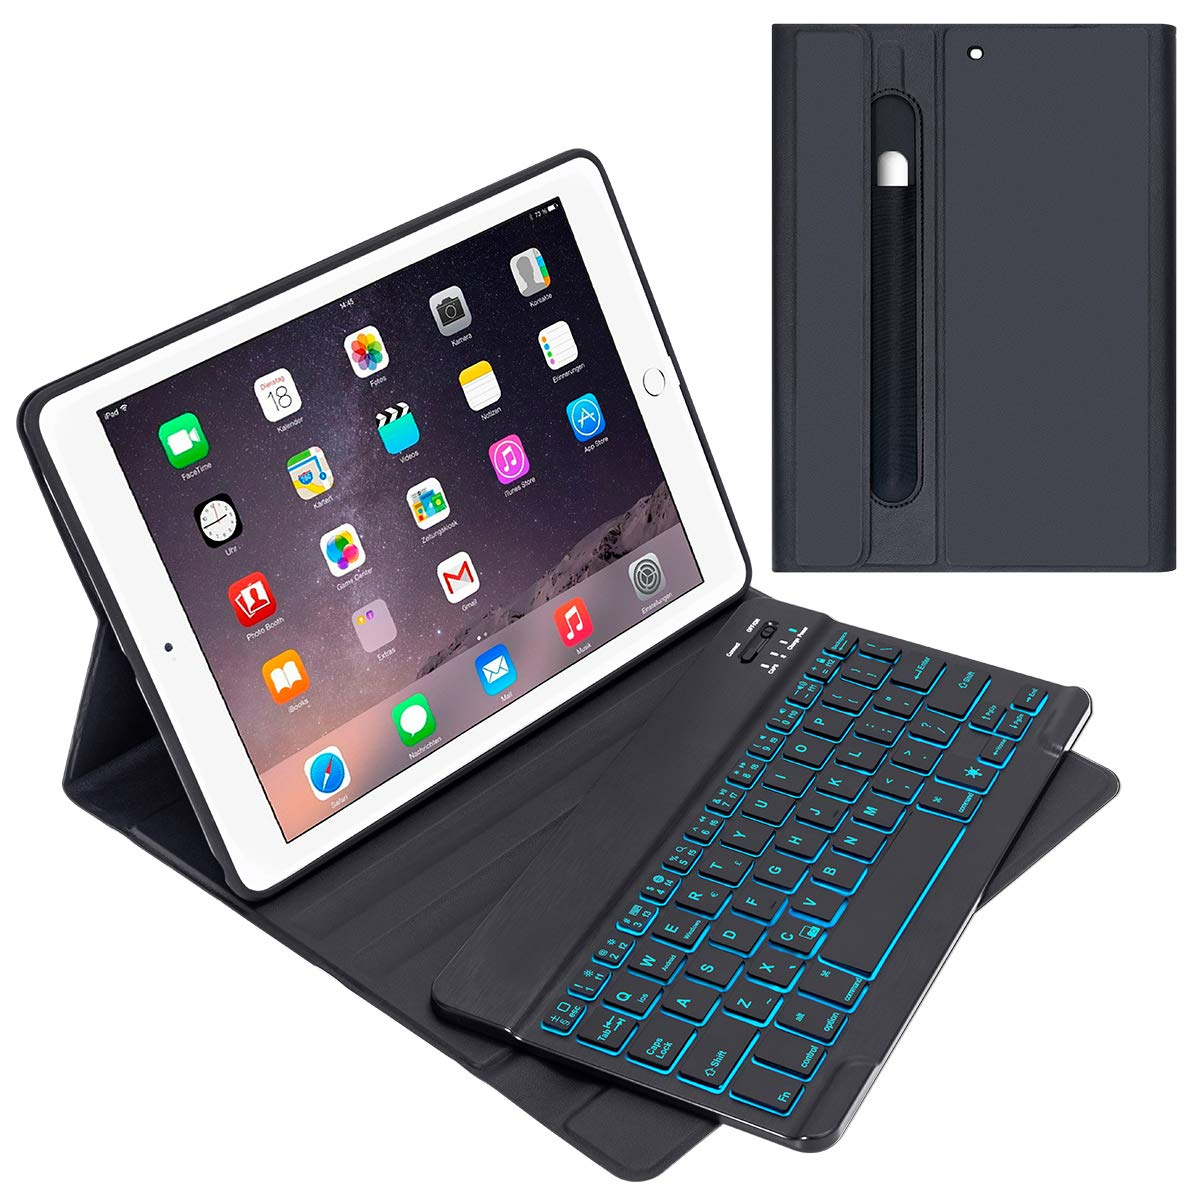 iPad Keyboard Case for iPad 9.7″ 2018 (Gen 6)/2017 (Gen 5), iPad Air 2 & Air 1